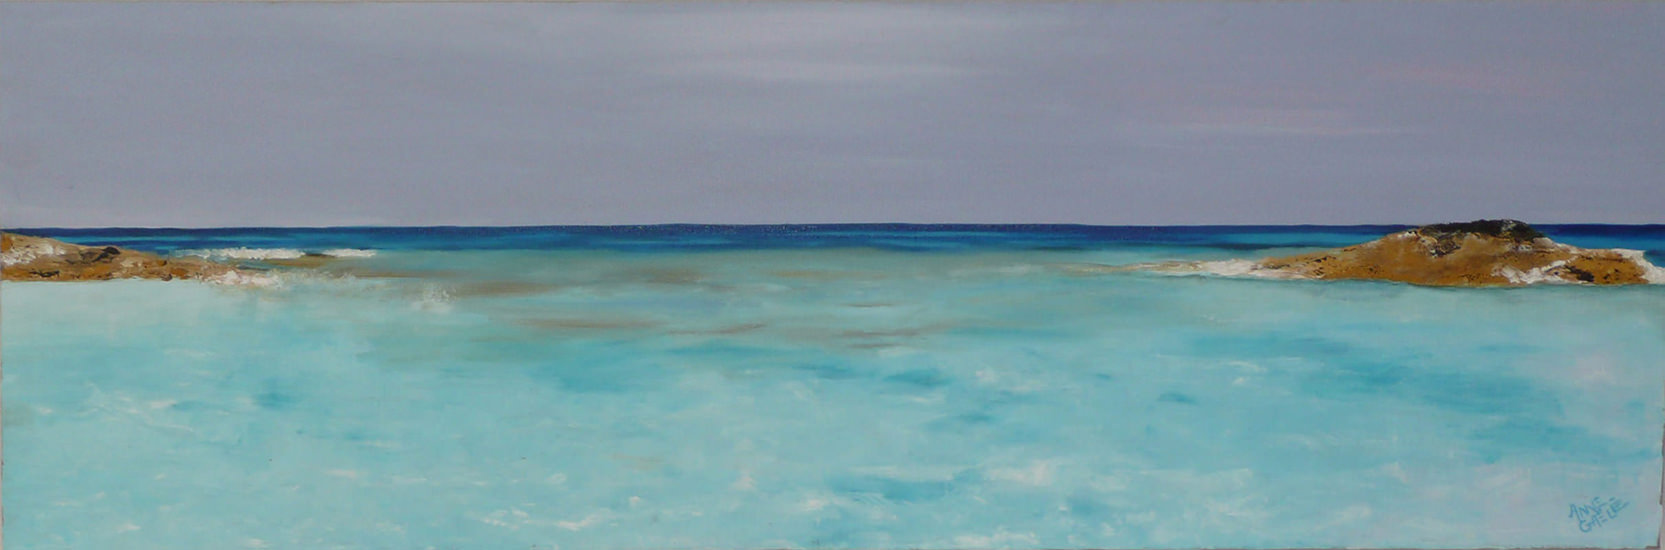 Formentera 90x30 cm - 2007 collection particulière Biot France